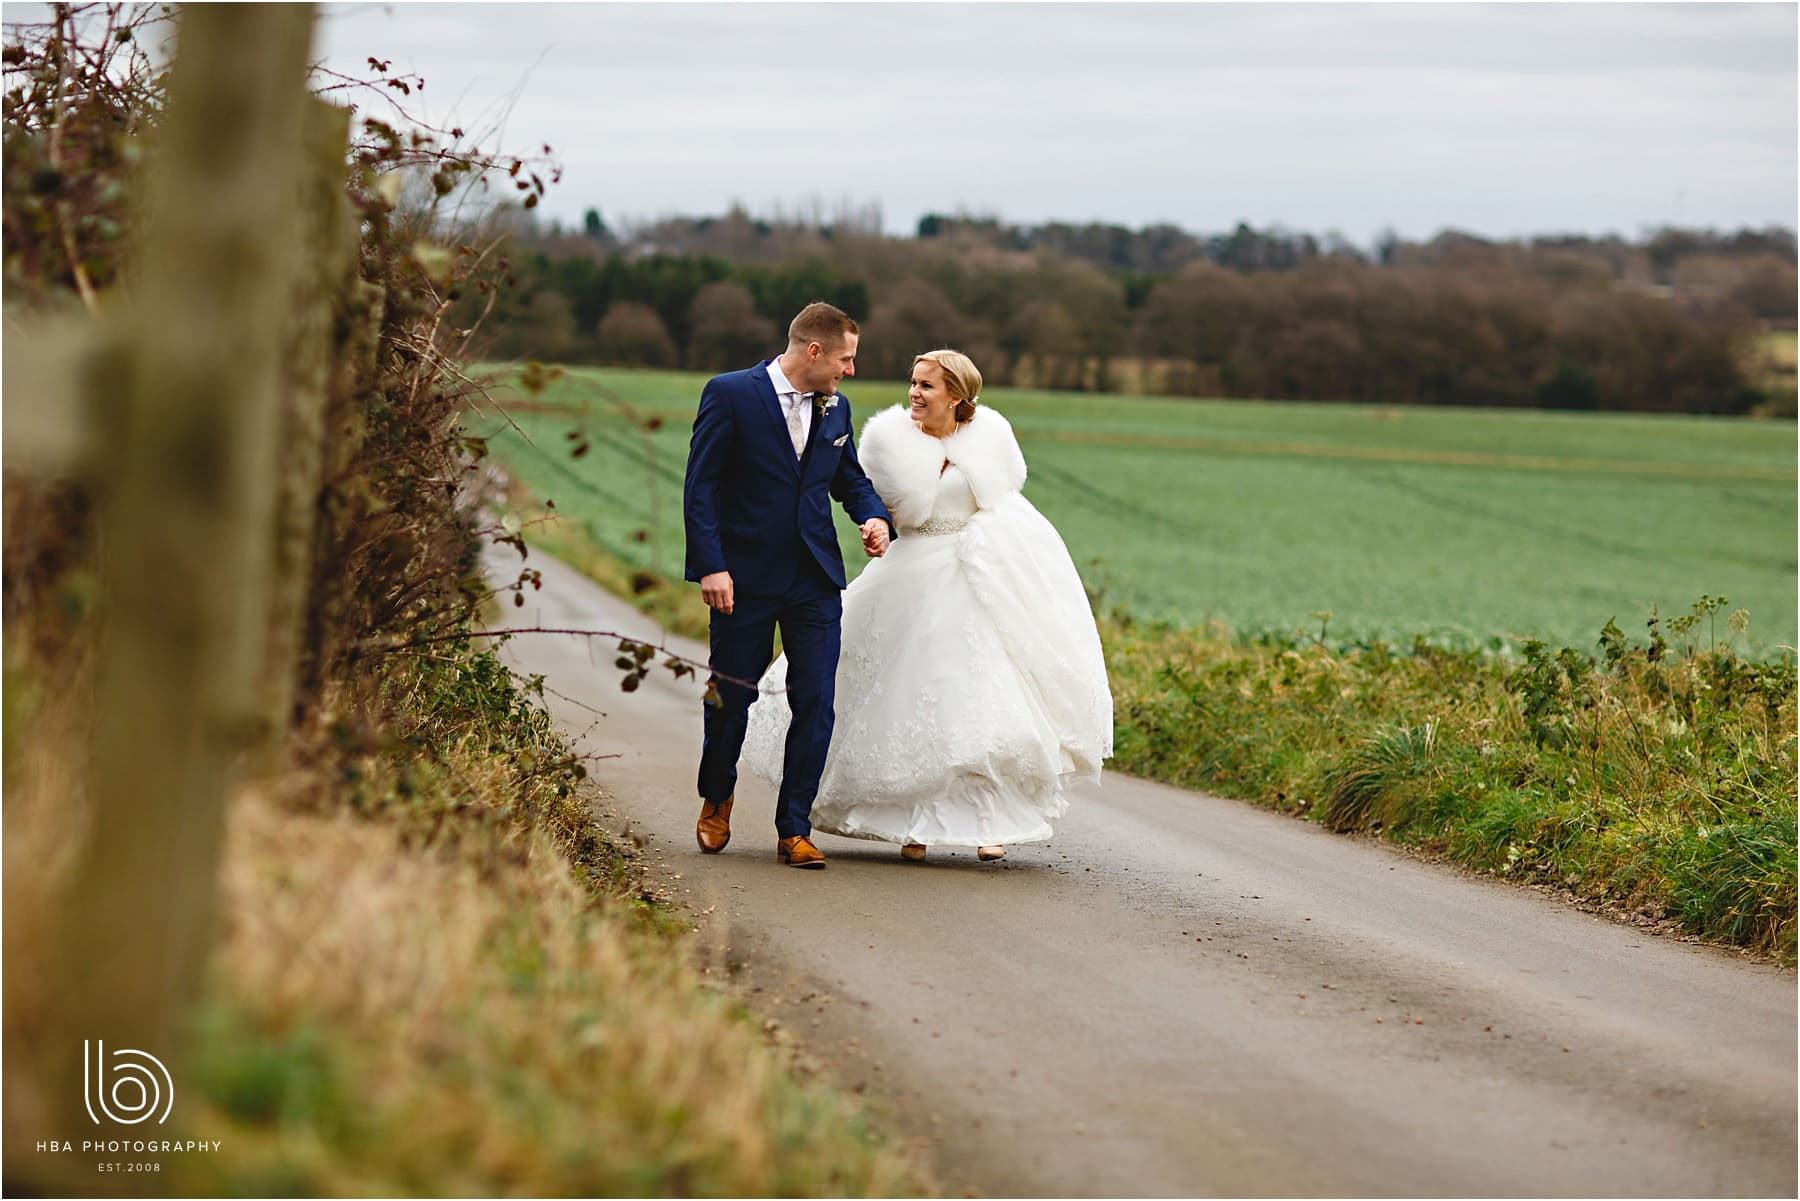 The bride and groom walking in the countryside at Swancar Farm Country House in Nottinghamshire